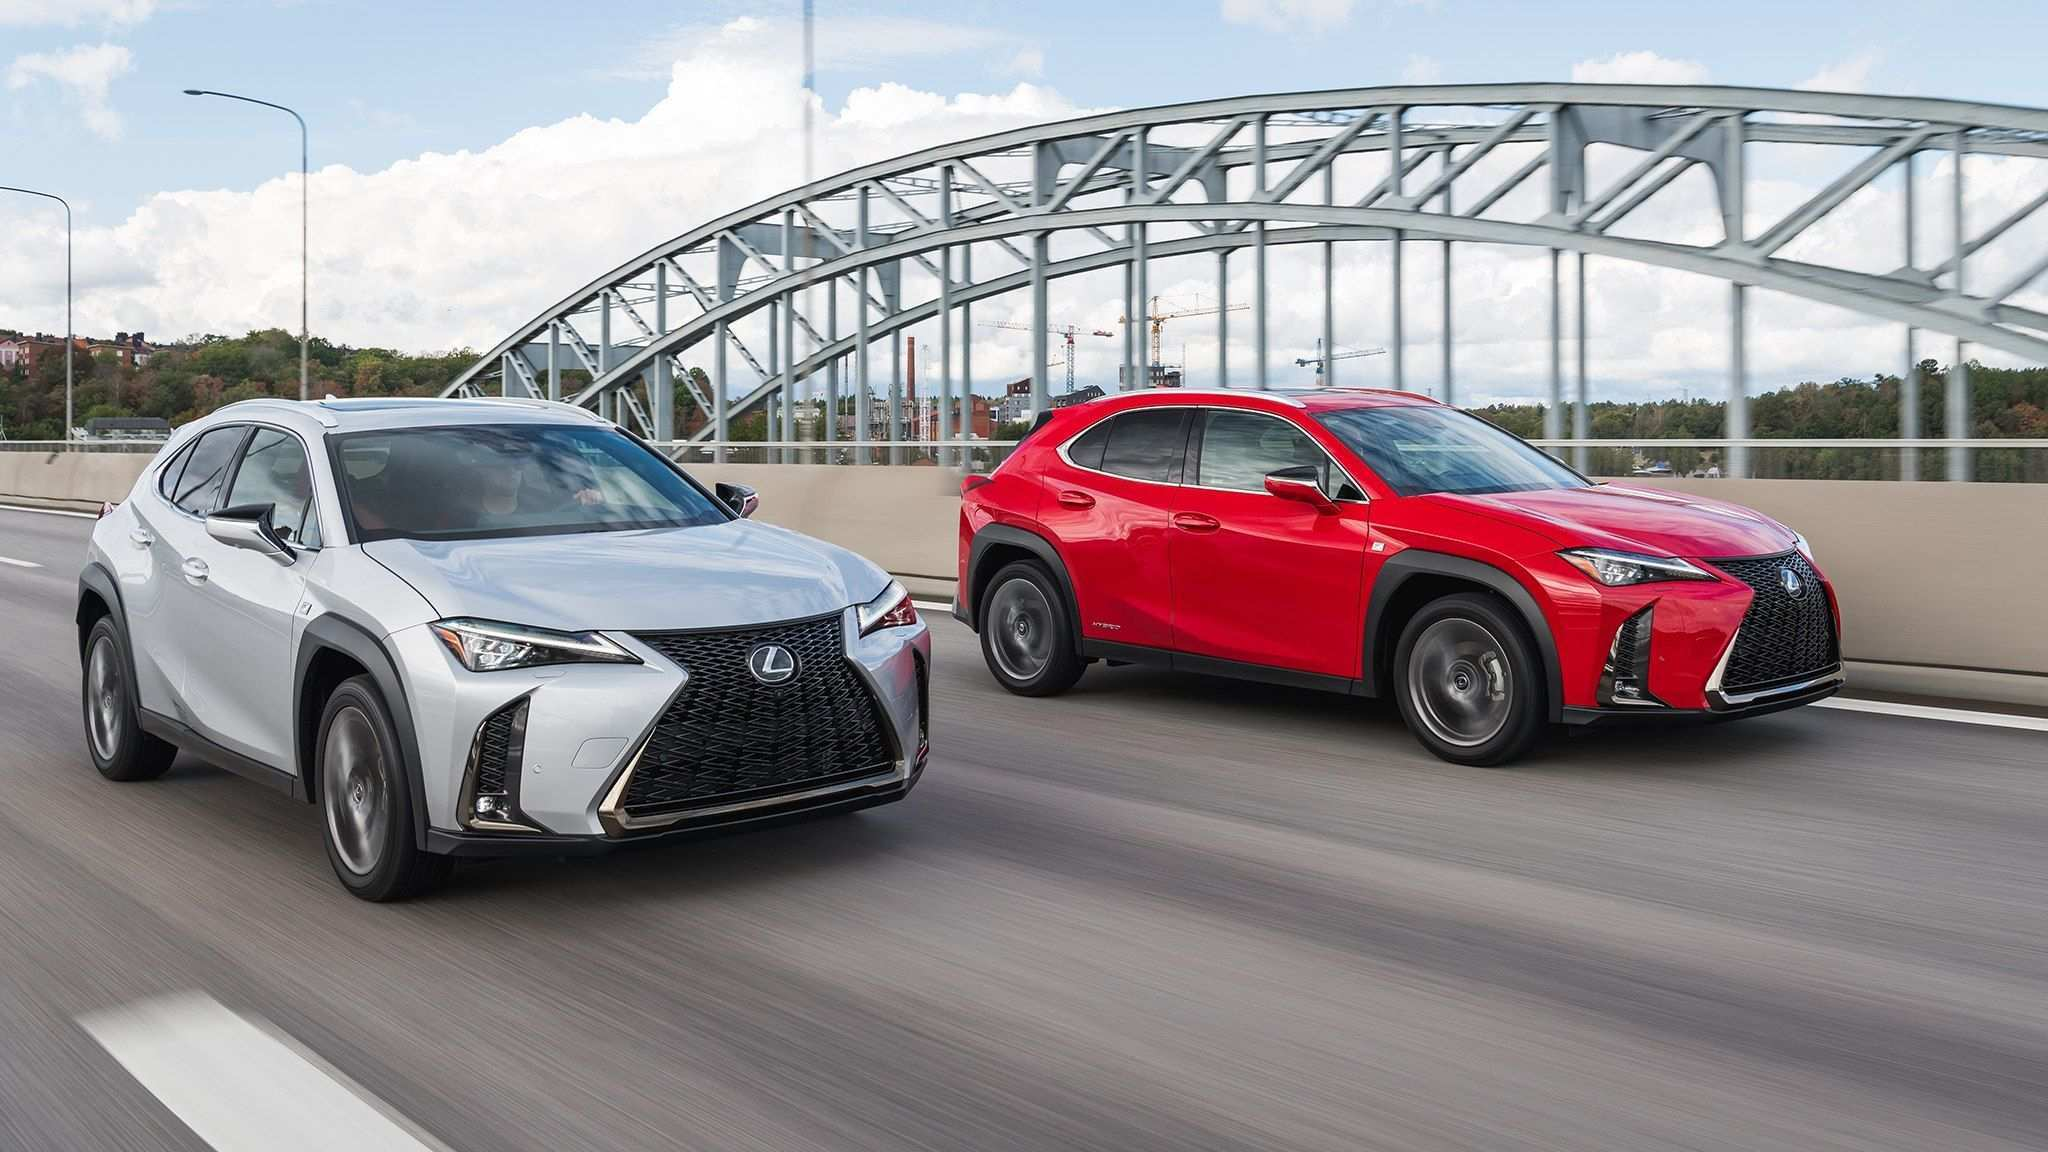 98 Gallery of Best Lexus Ux 2019 Specs And Review Specs and Review with Best Lexus Ux 2019 Specs And Review